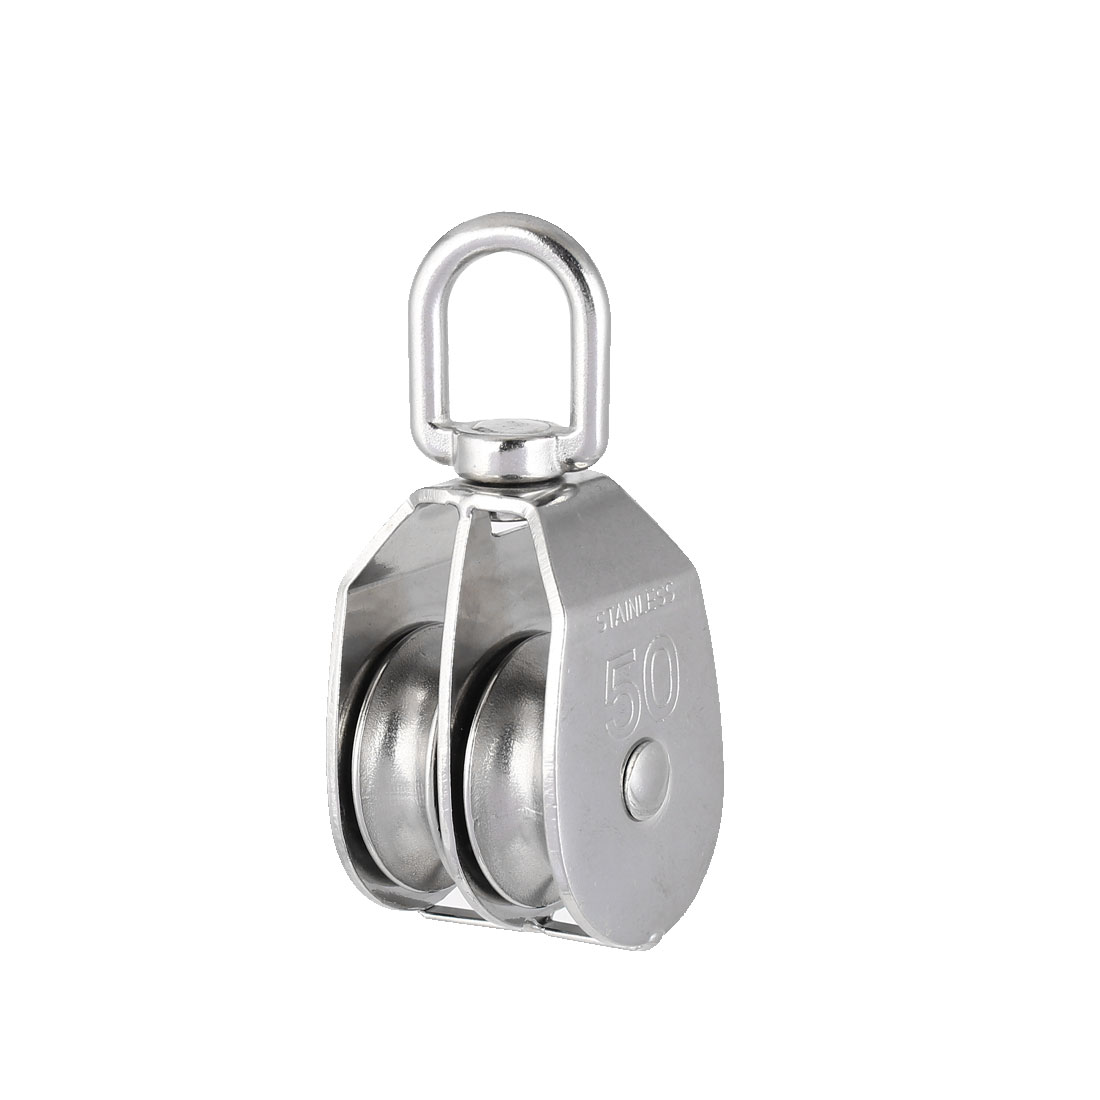 M50 304 Stainless Steel Double Sheave Swiveling Head Lifting Crane Pulley Block